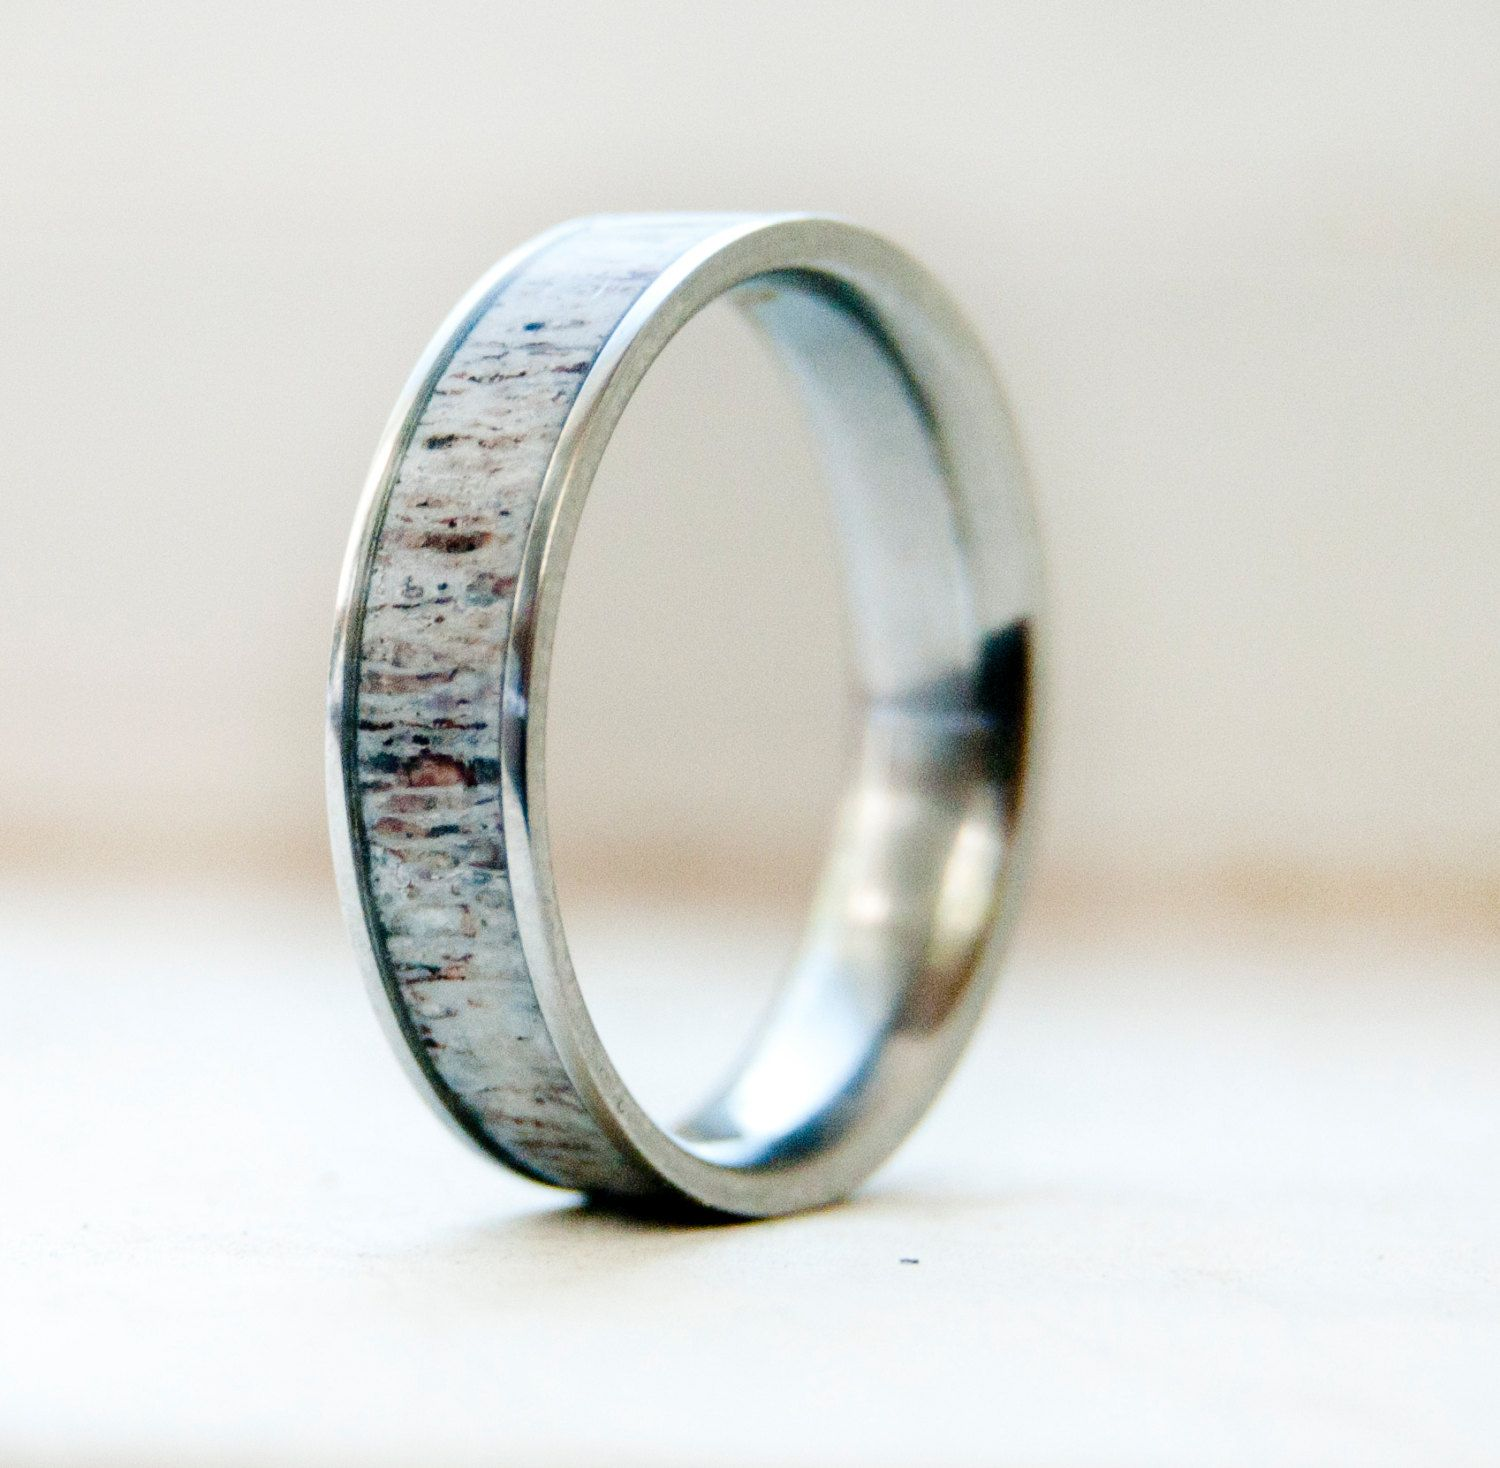 mens wedding band w antler inlay wedding ring staghead designs - Unique Wedding Rings For Men